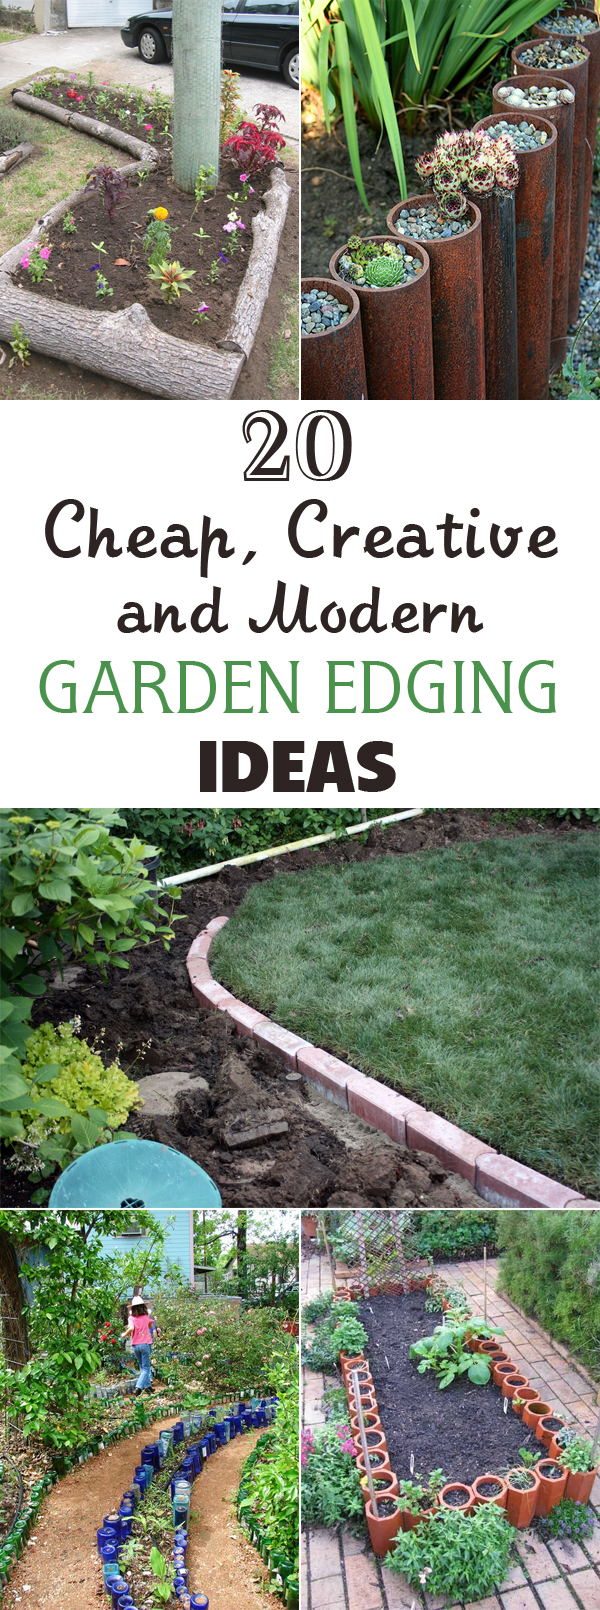 20 cheap creative and modern garden edging ideas for Cheap diy garden edging